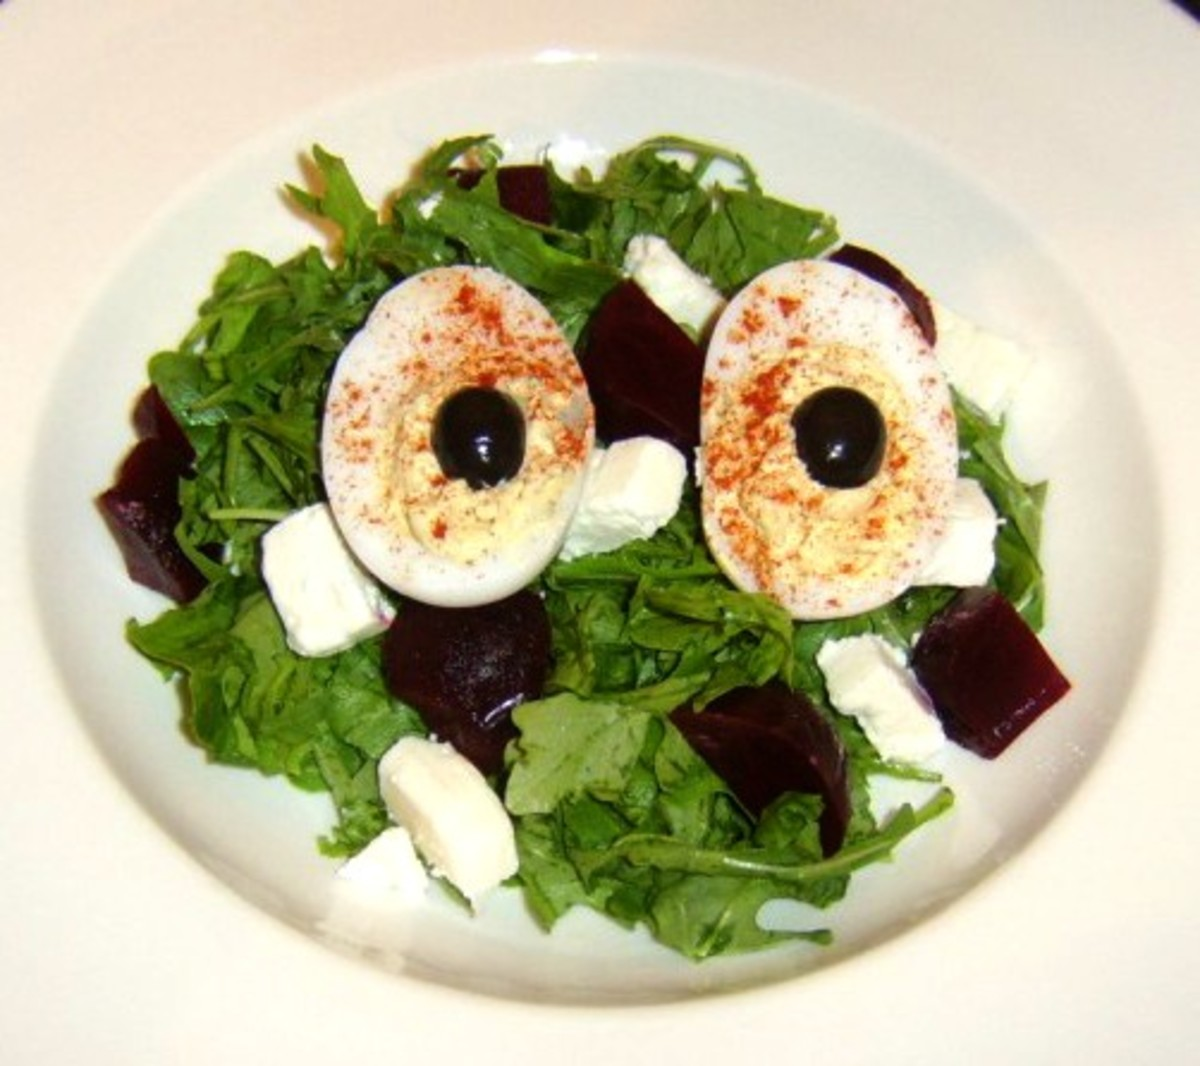 Deviled duck egg is served on a bed of green leaves, beetroot and Greek feta cheese